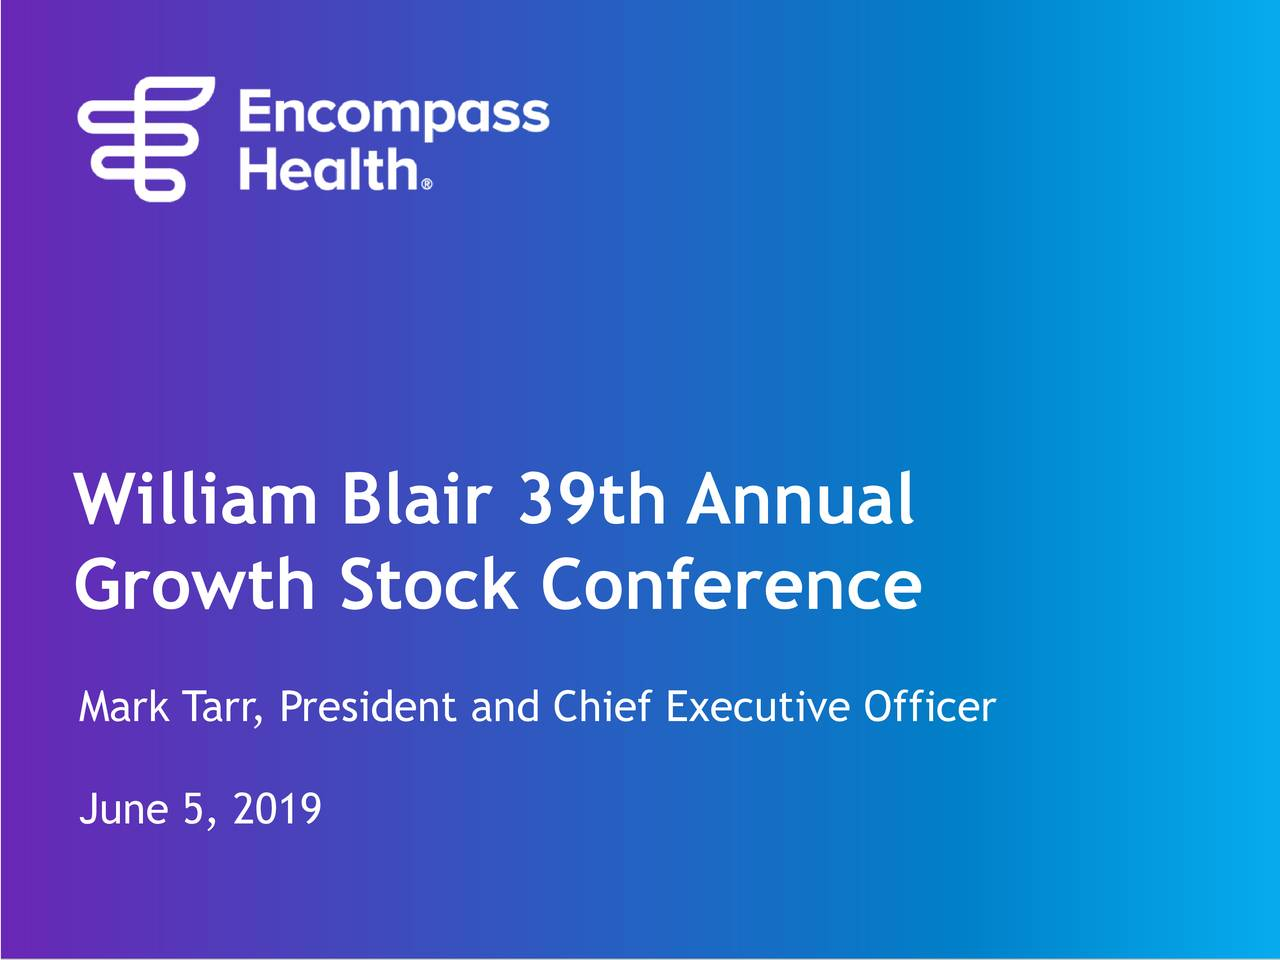 Encompass Health (EHC) Presents At William Blair Growth Stock Conference - Slideshow